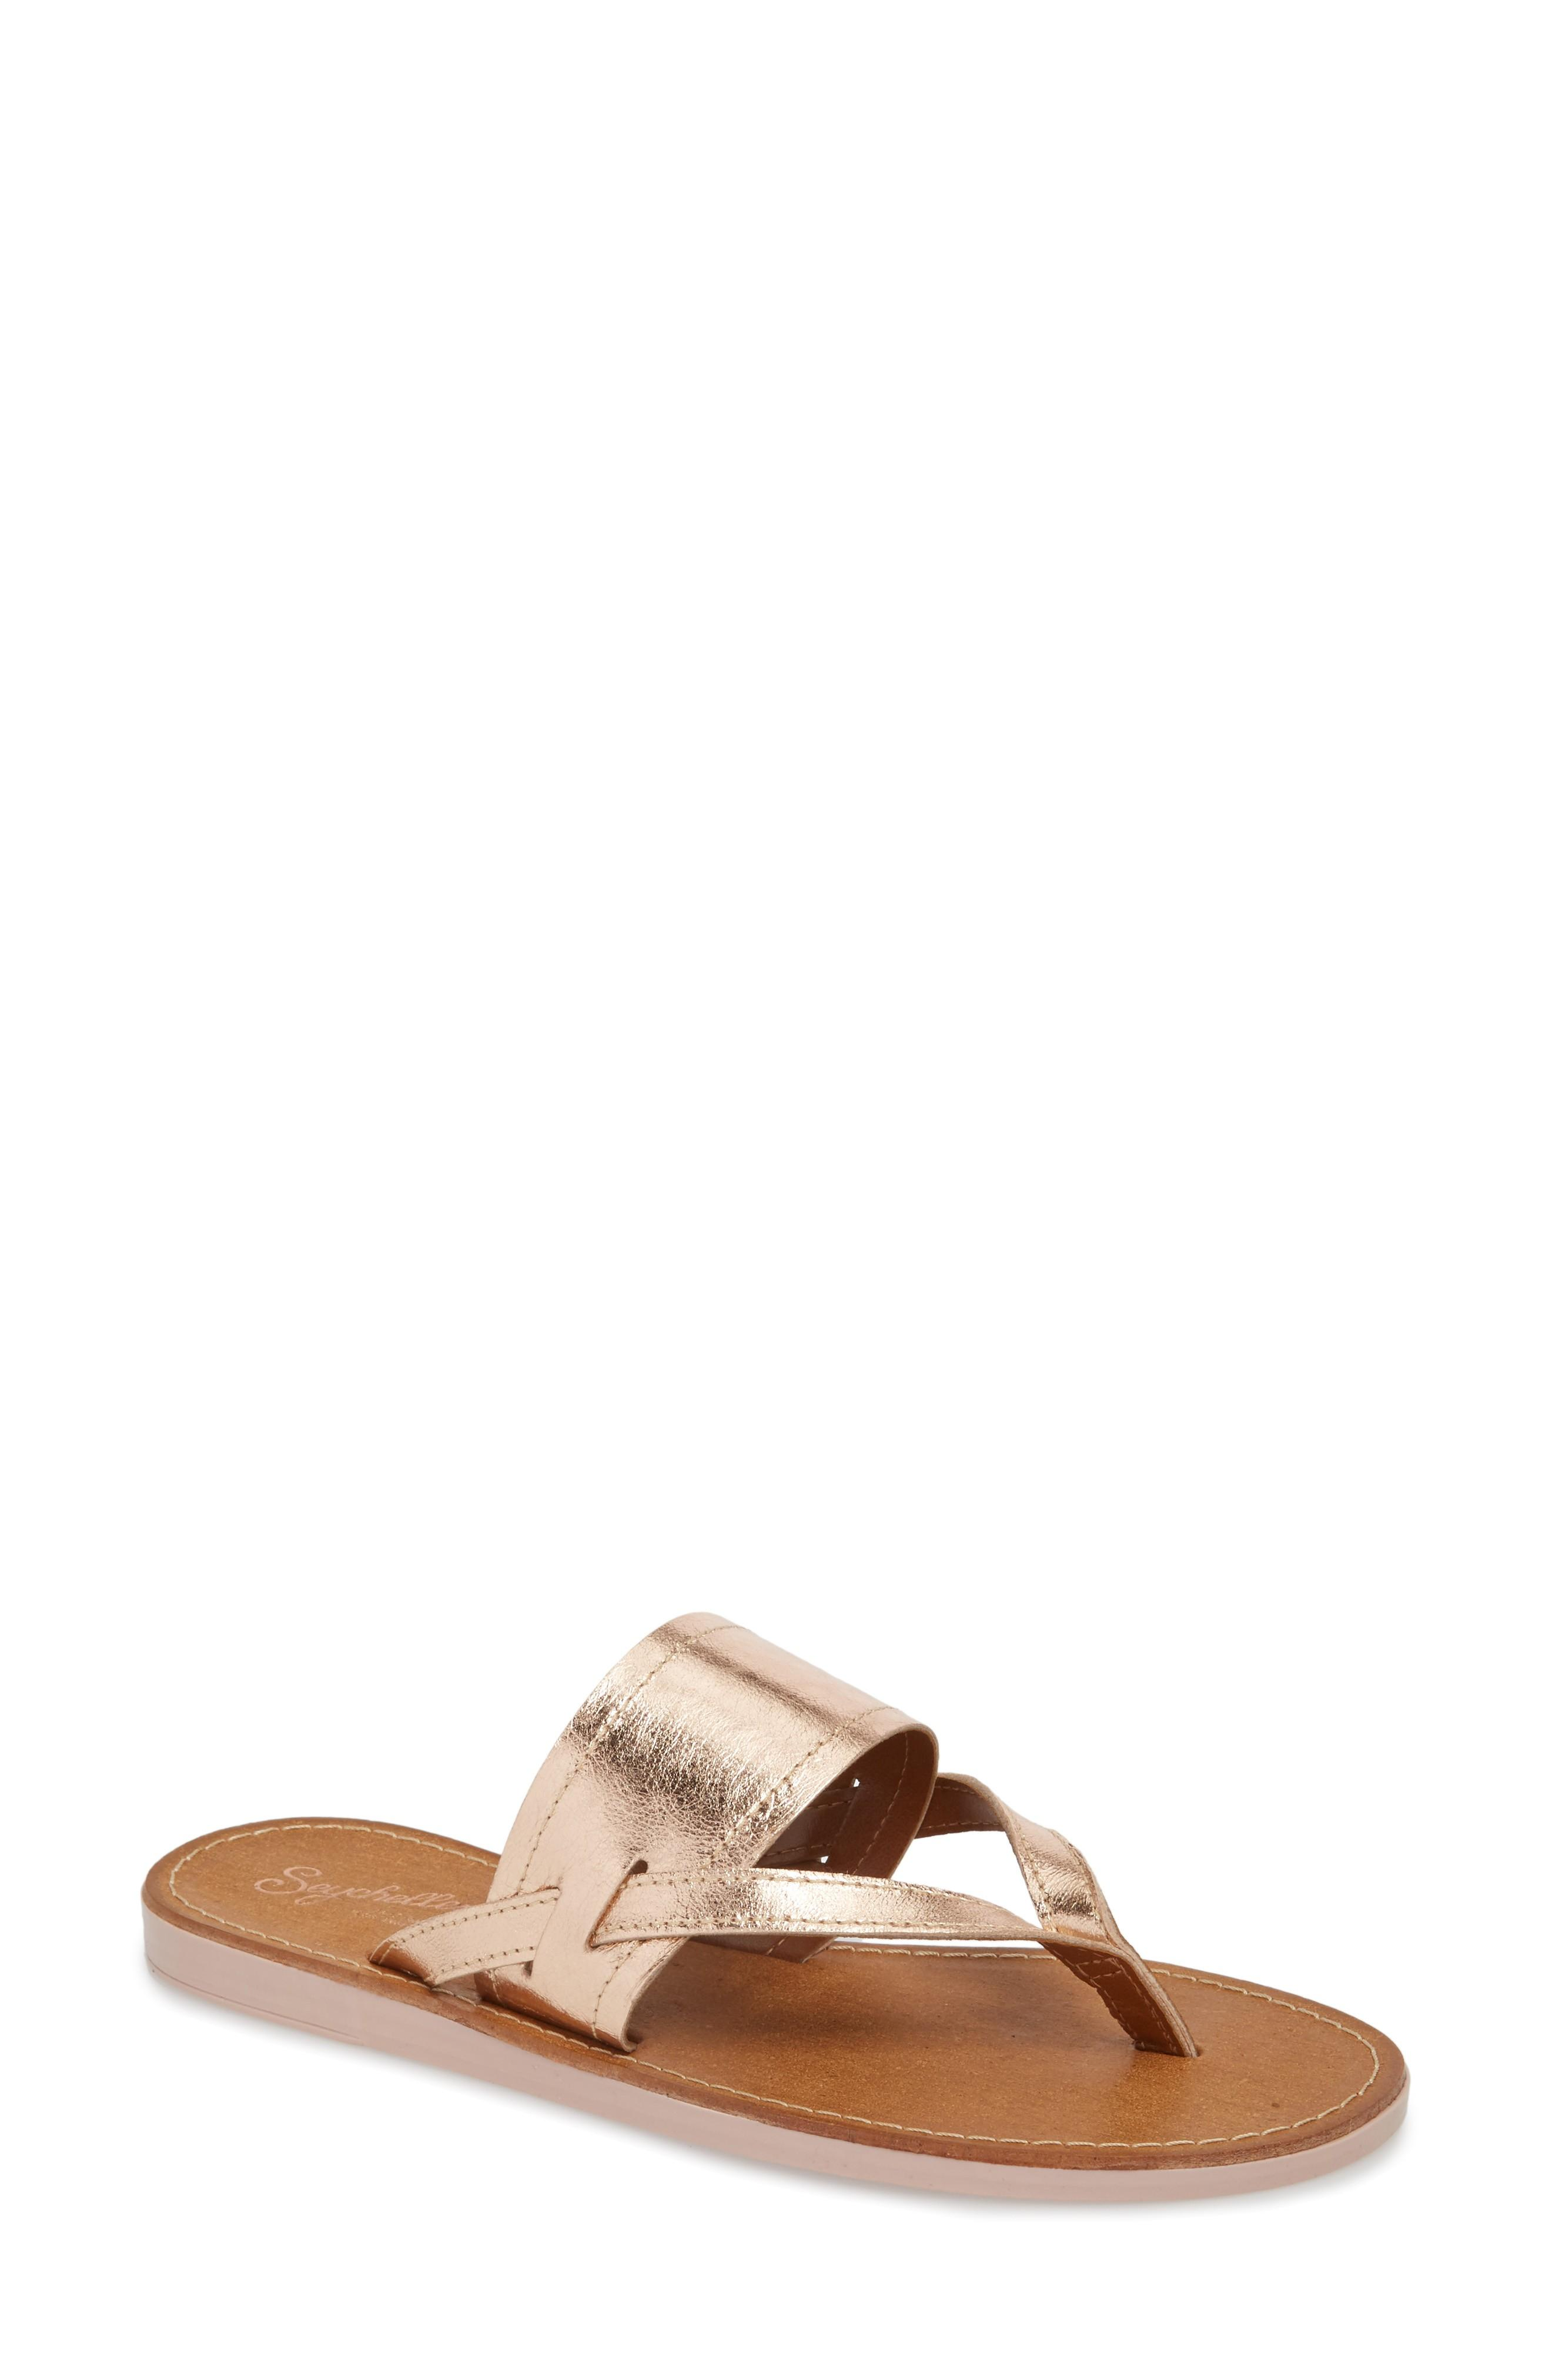 fdb7c0f1dd6 Style Name  Seychelles Mosaic Thong Sandal (Women). Style Number  5356991.  Available in stores.